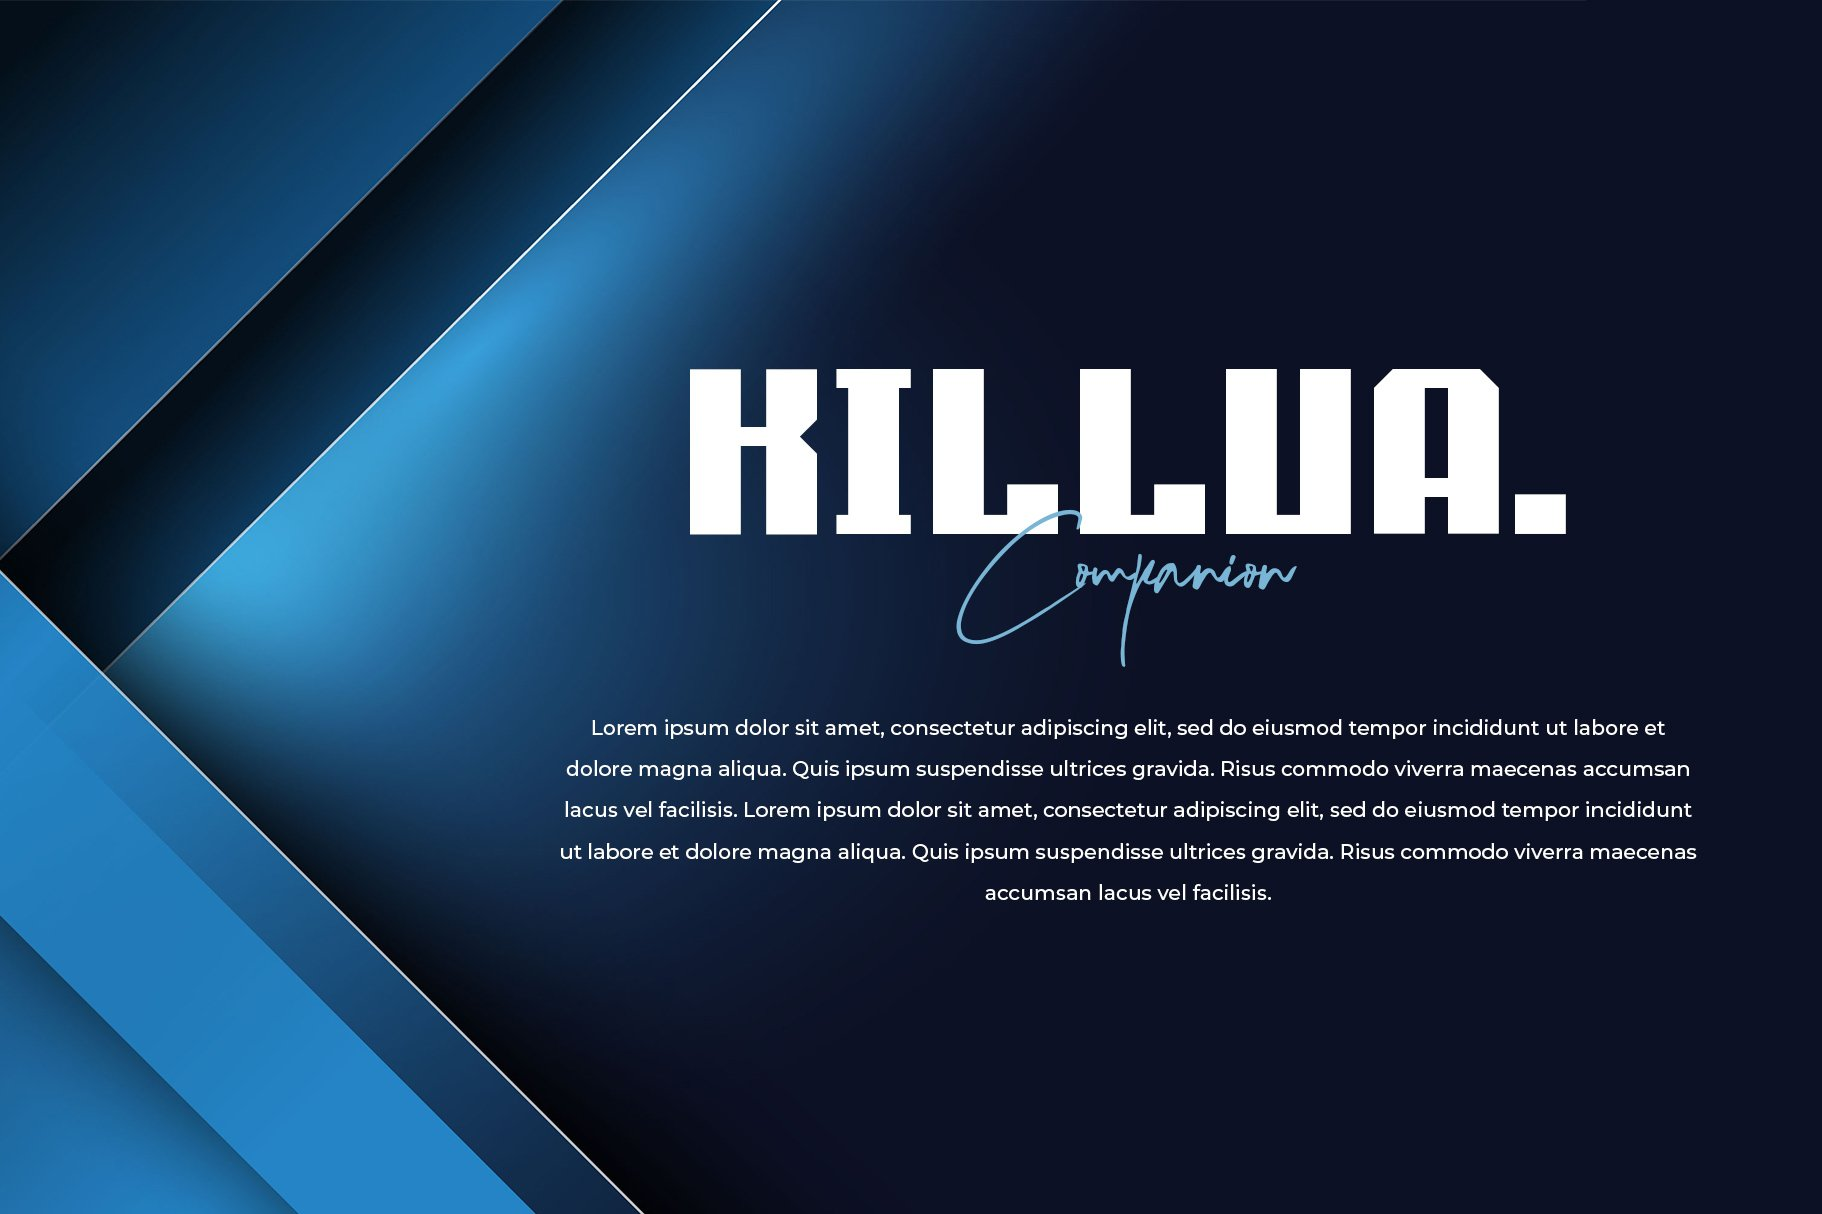 Cero - Modern Display Typeface example image 3